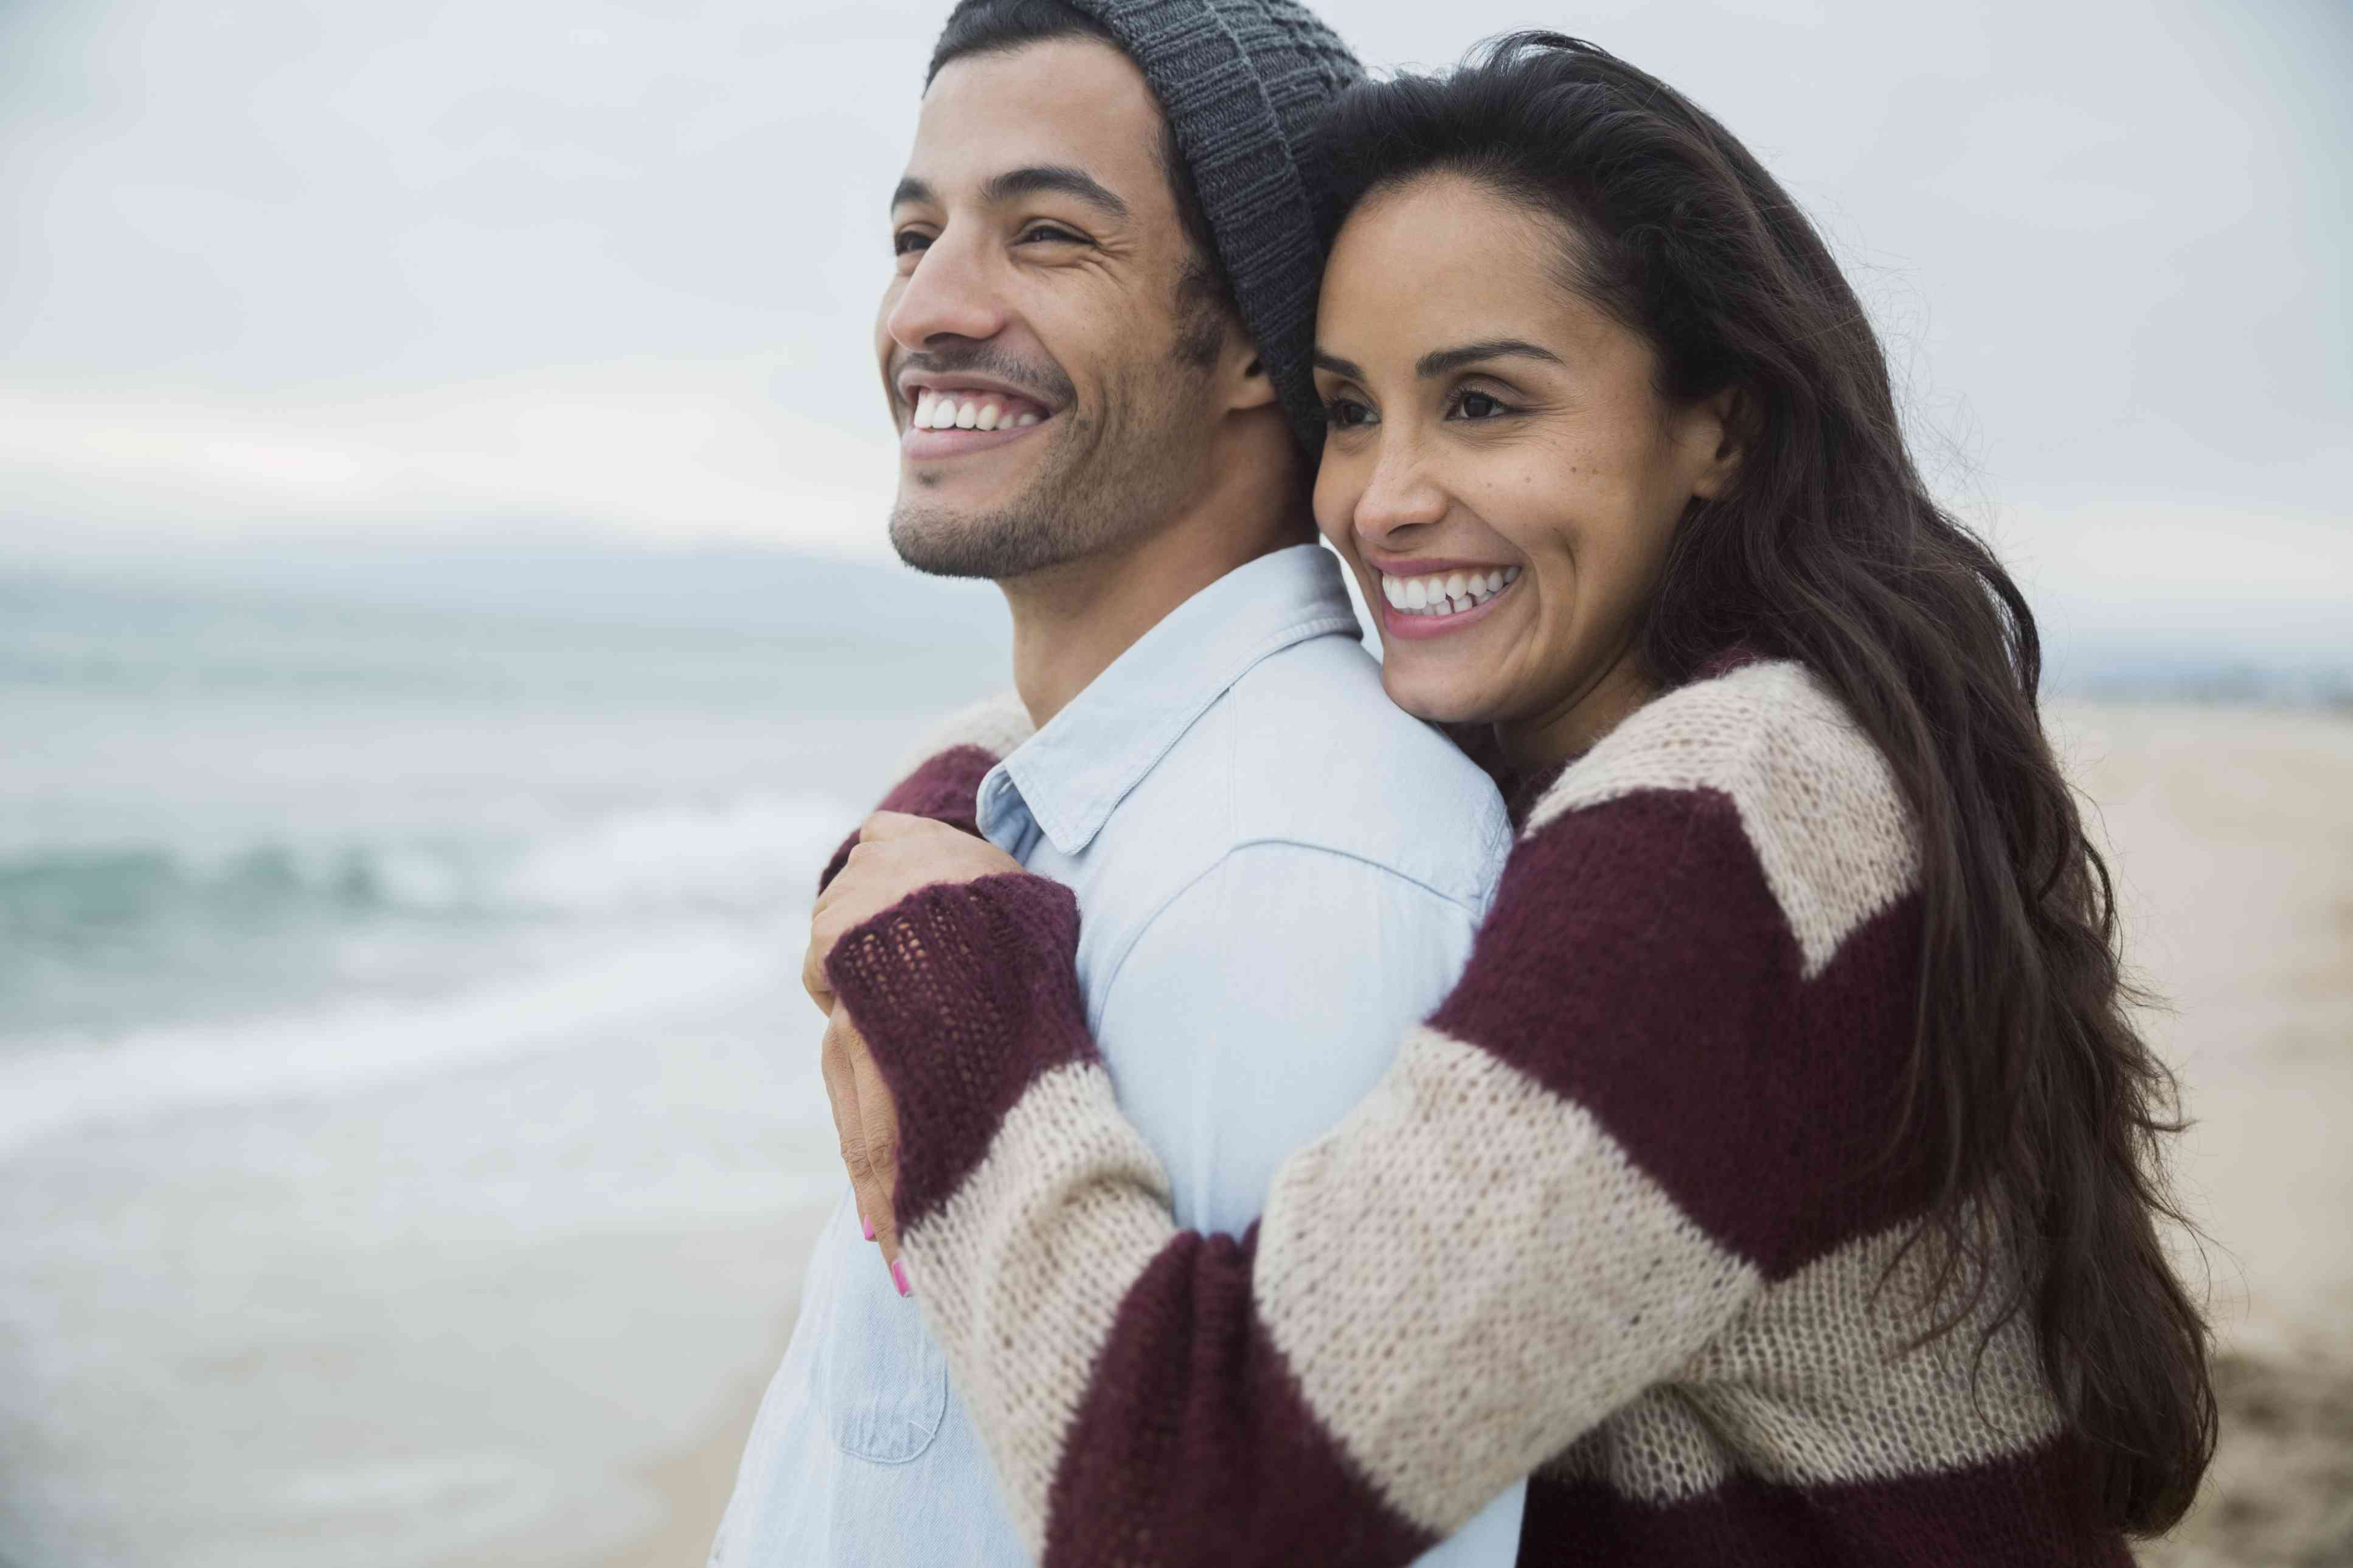 A man and a woman hugging on the beach